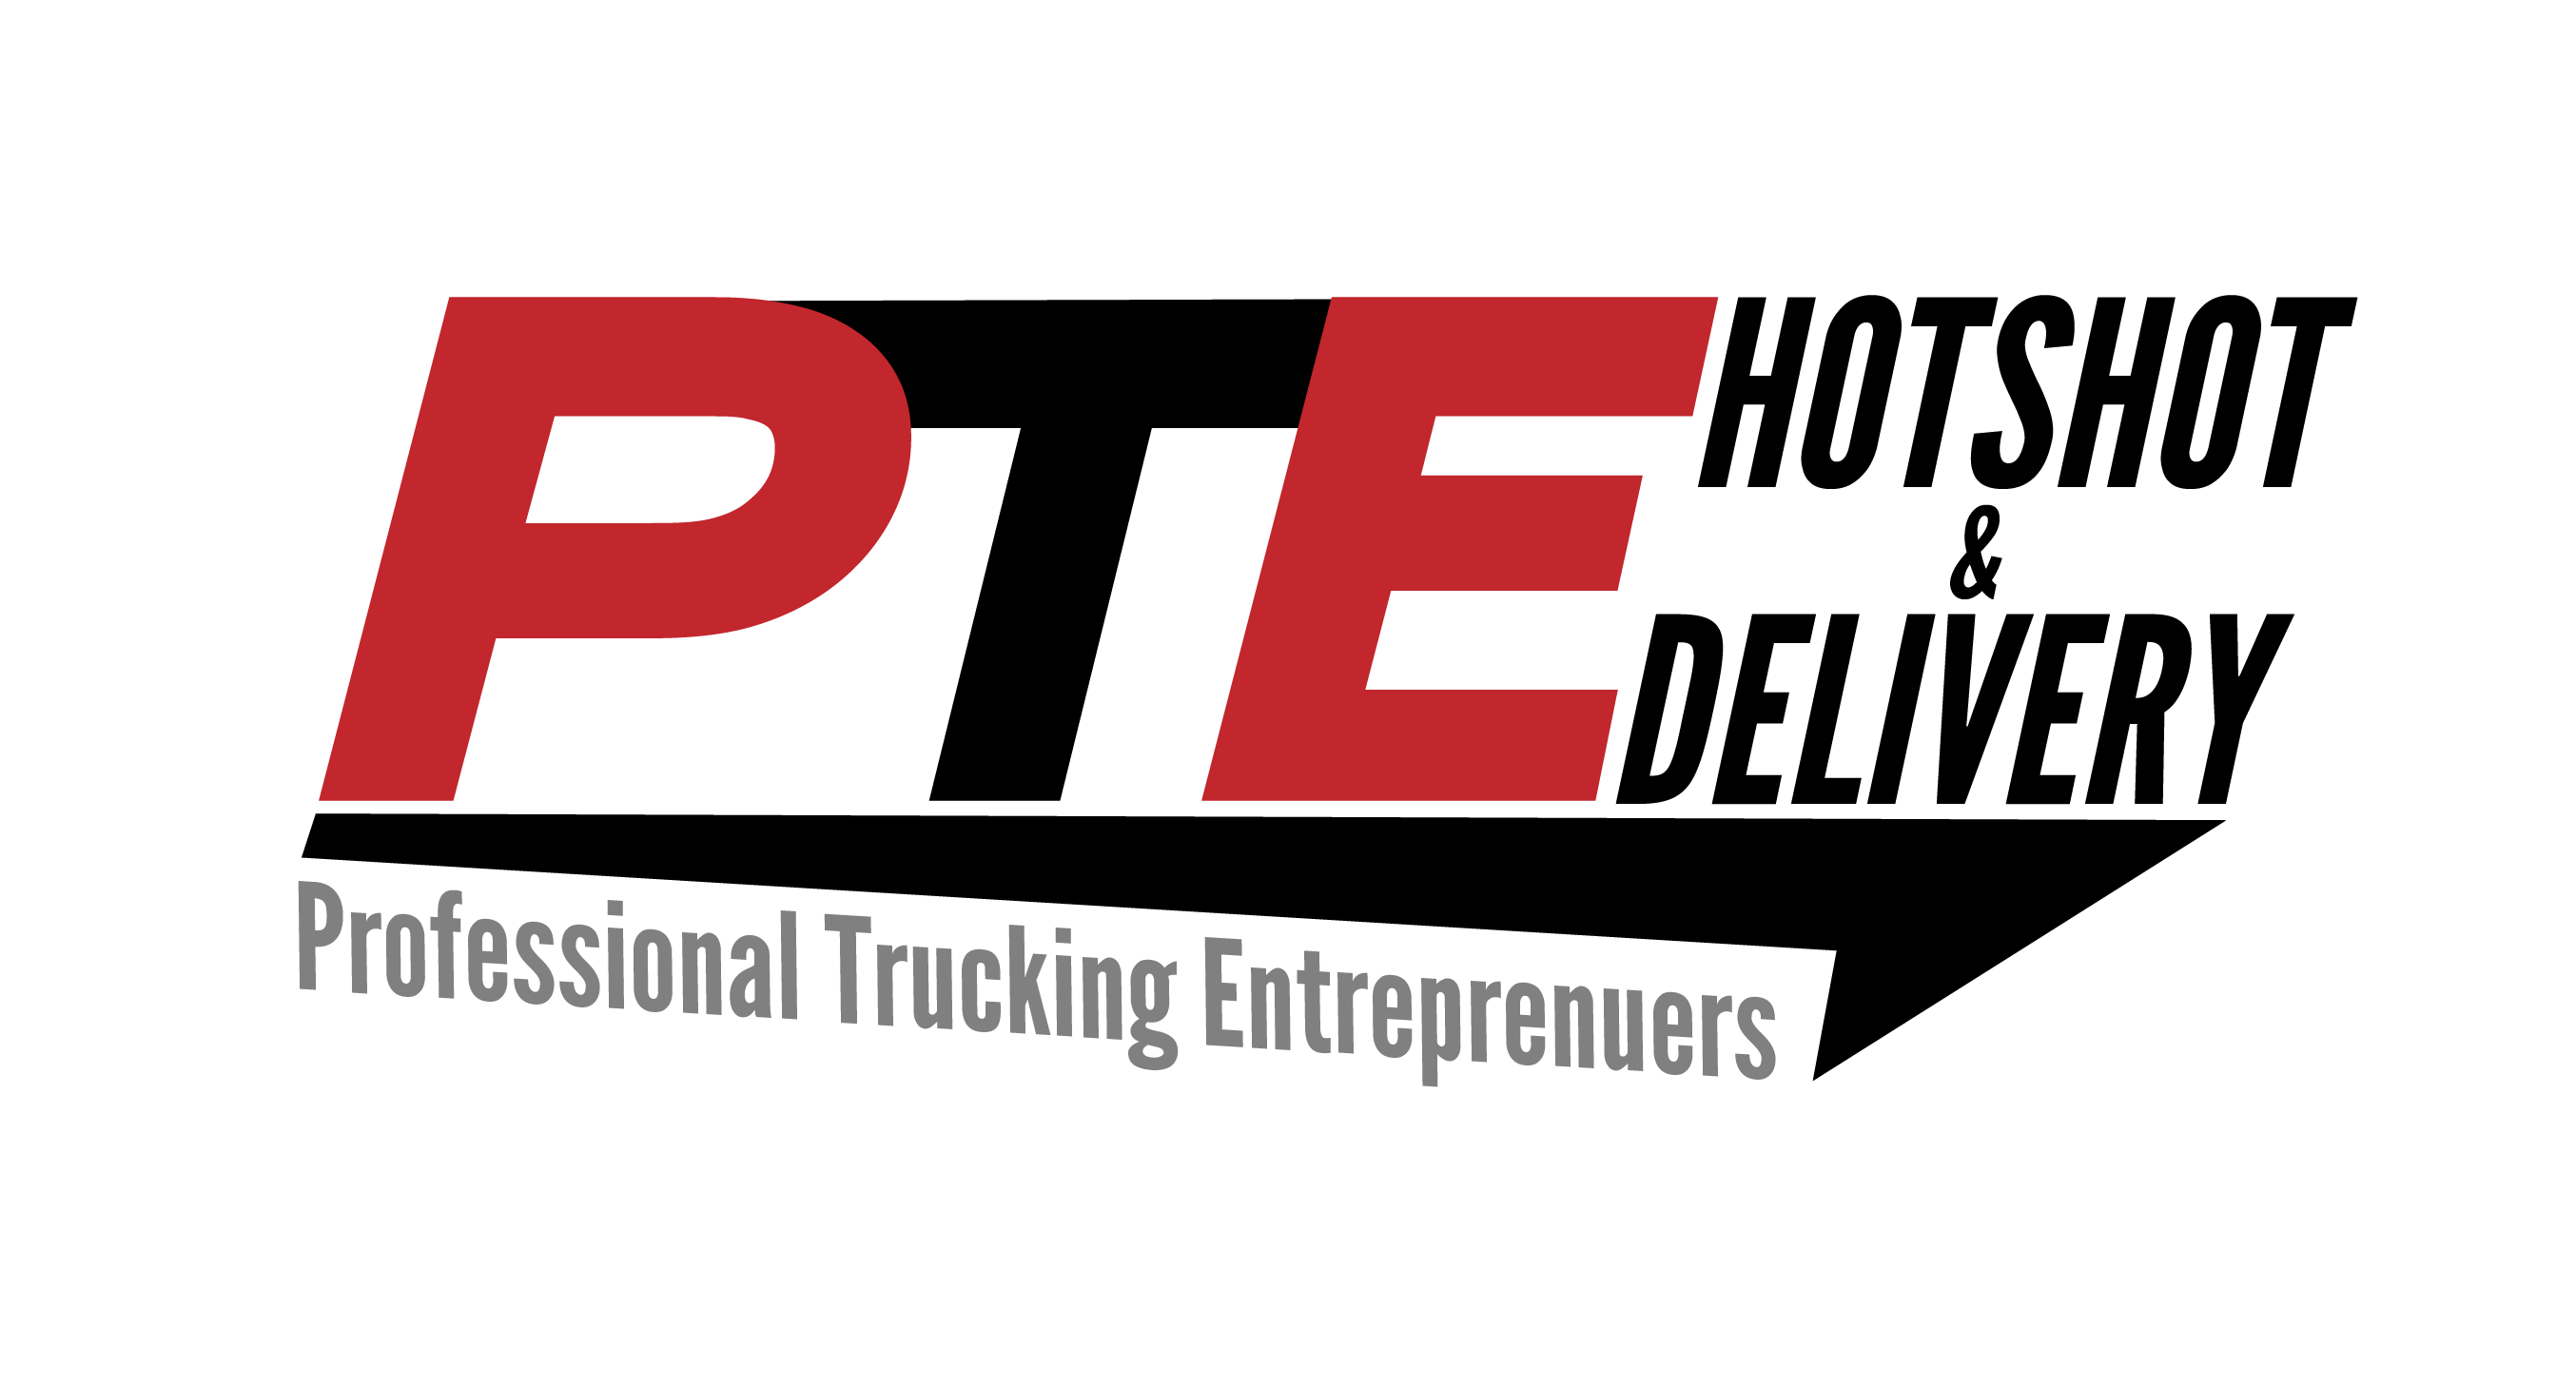 Custom Logo Design for PTE Hotshot and Delivery